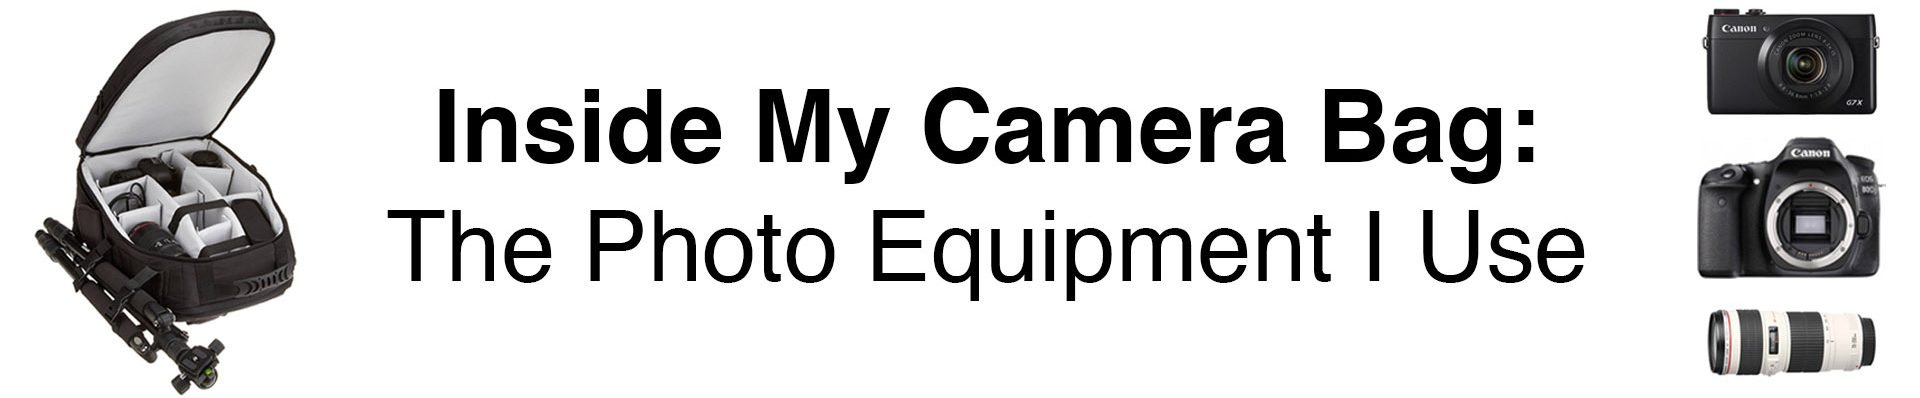 What's Inside My Camera Bag: The Photo Equipment I Use